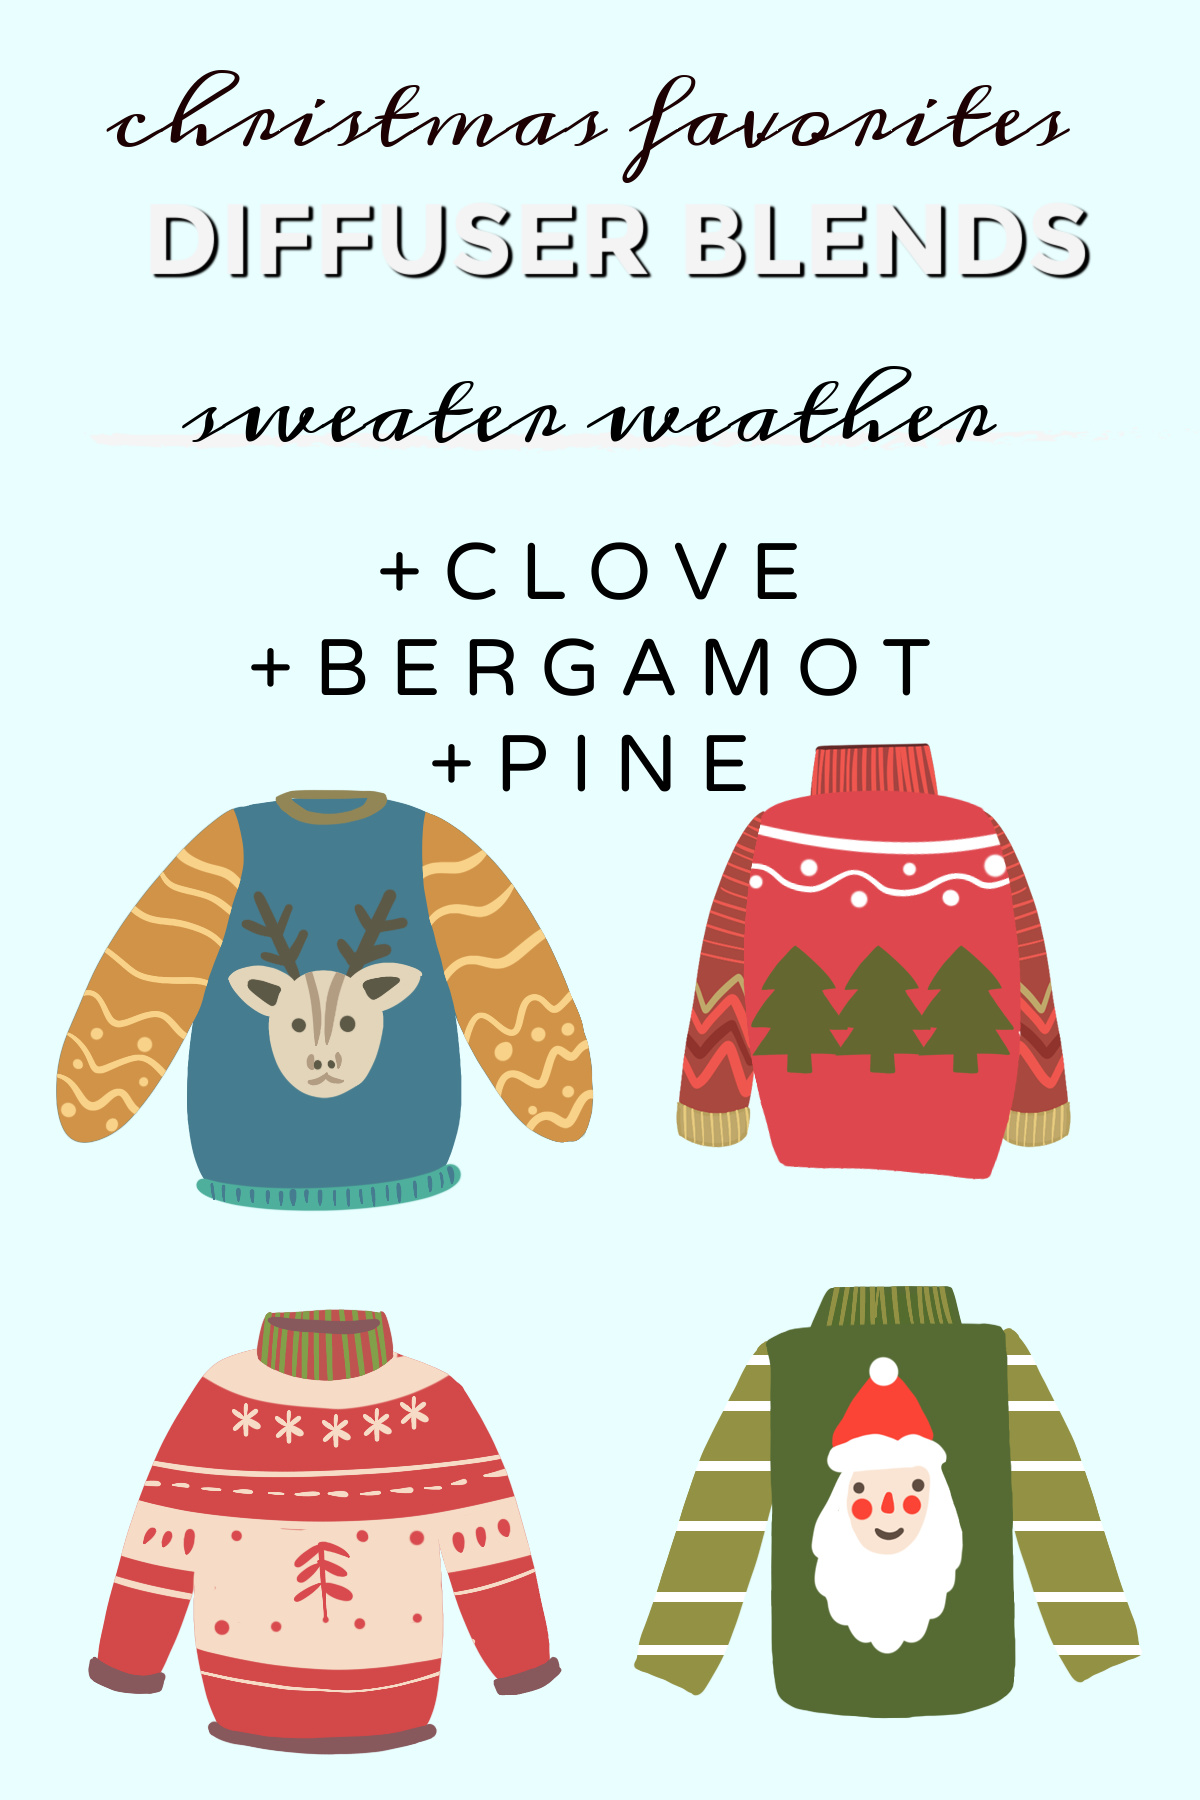 Christmas Diffuser Blends – Free Printables